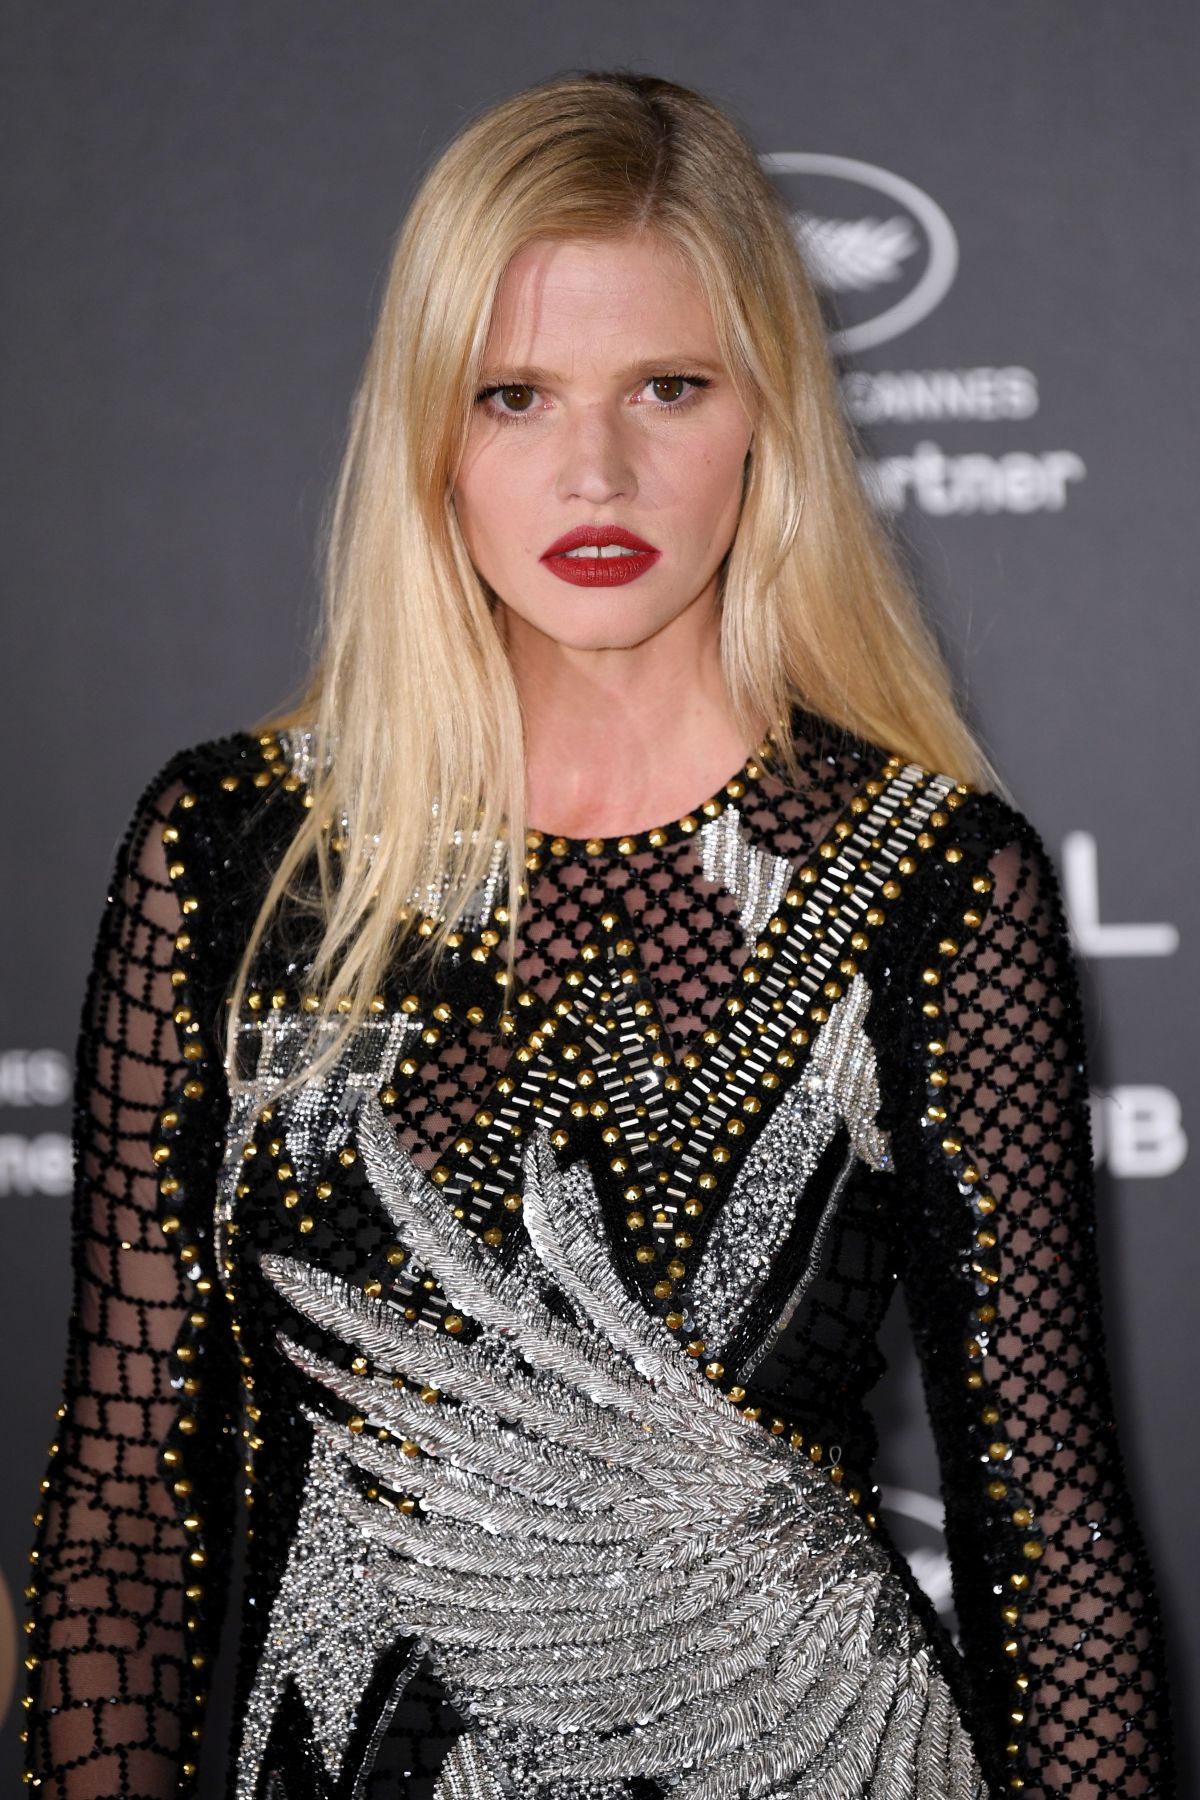 LARA STONE at L'Oreal 20th Anniversary Party at Cannes Film Festival 05/24/2017